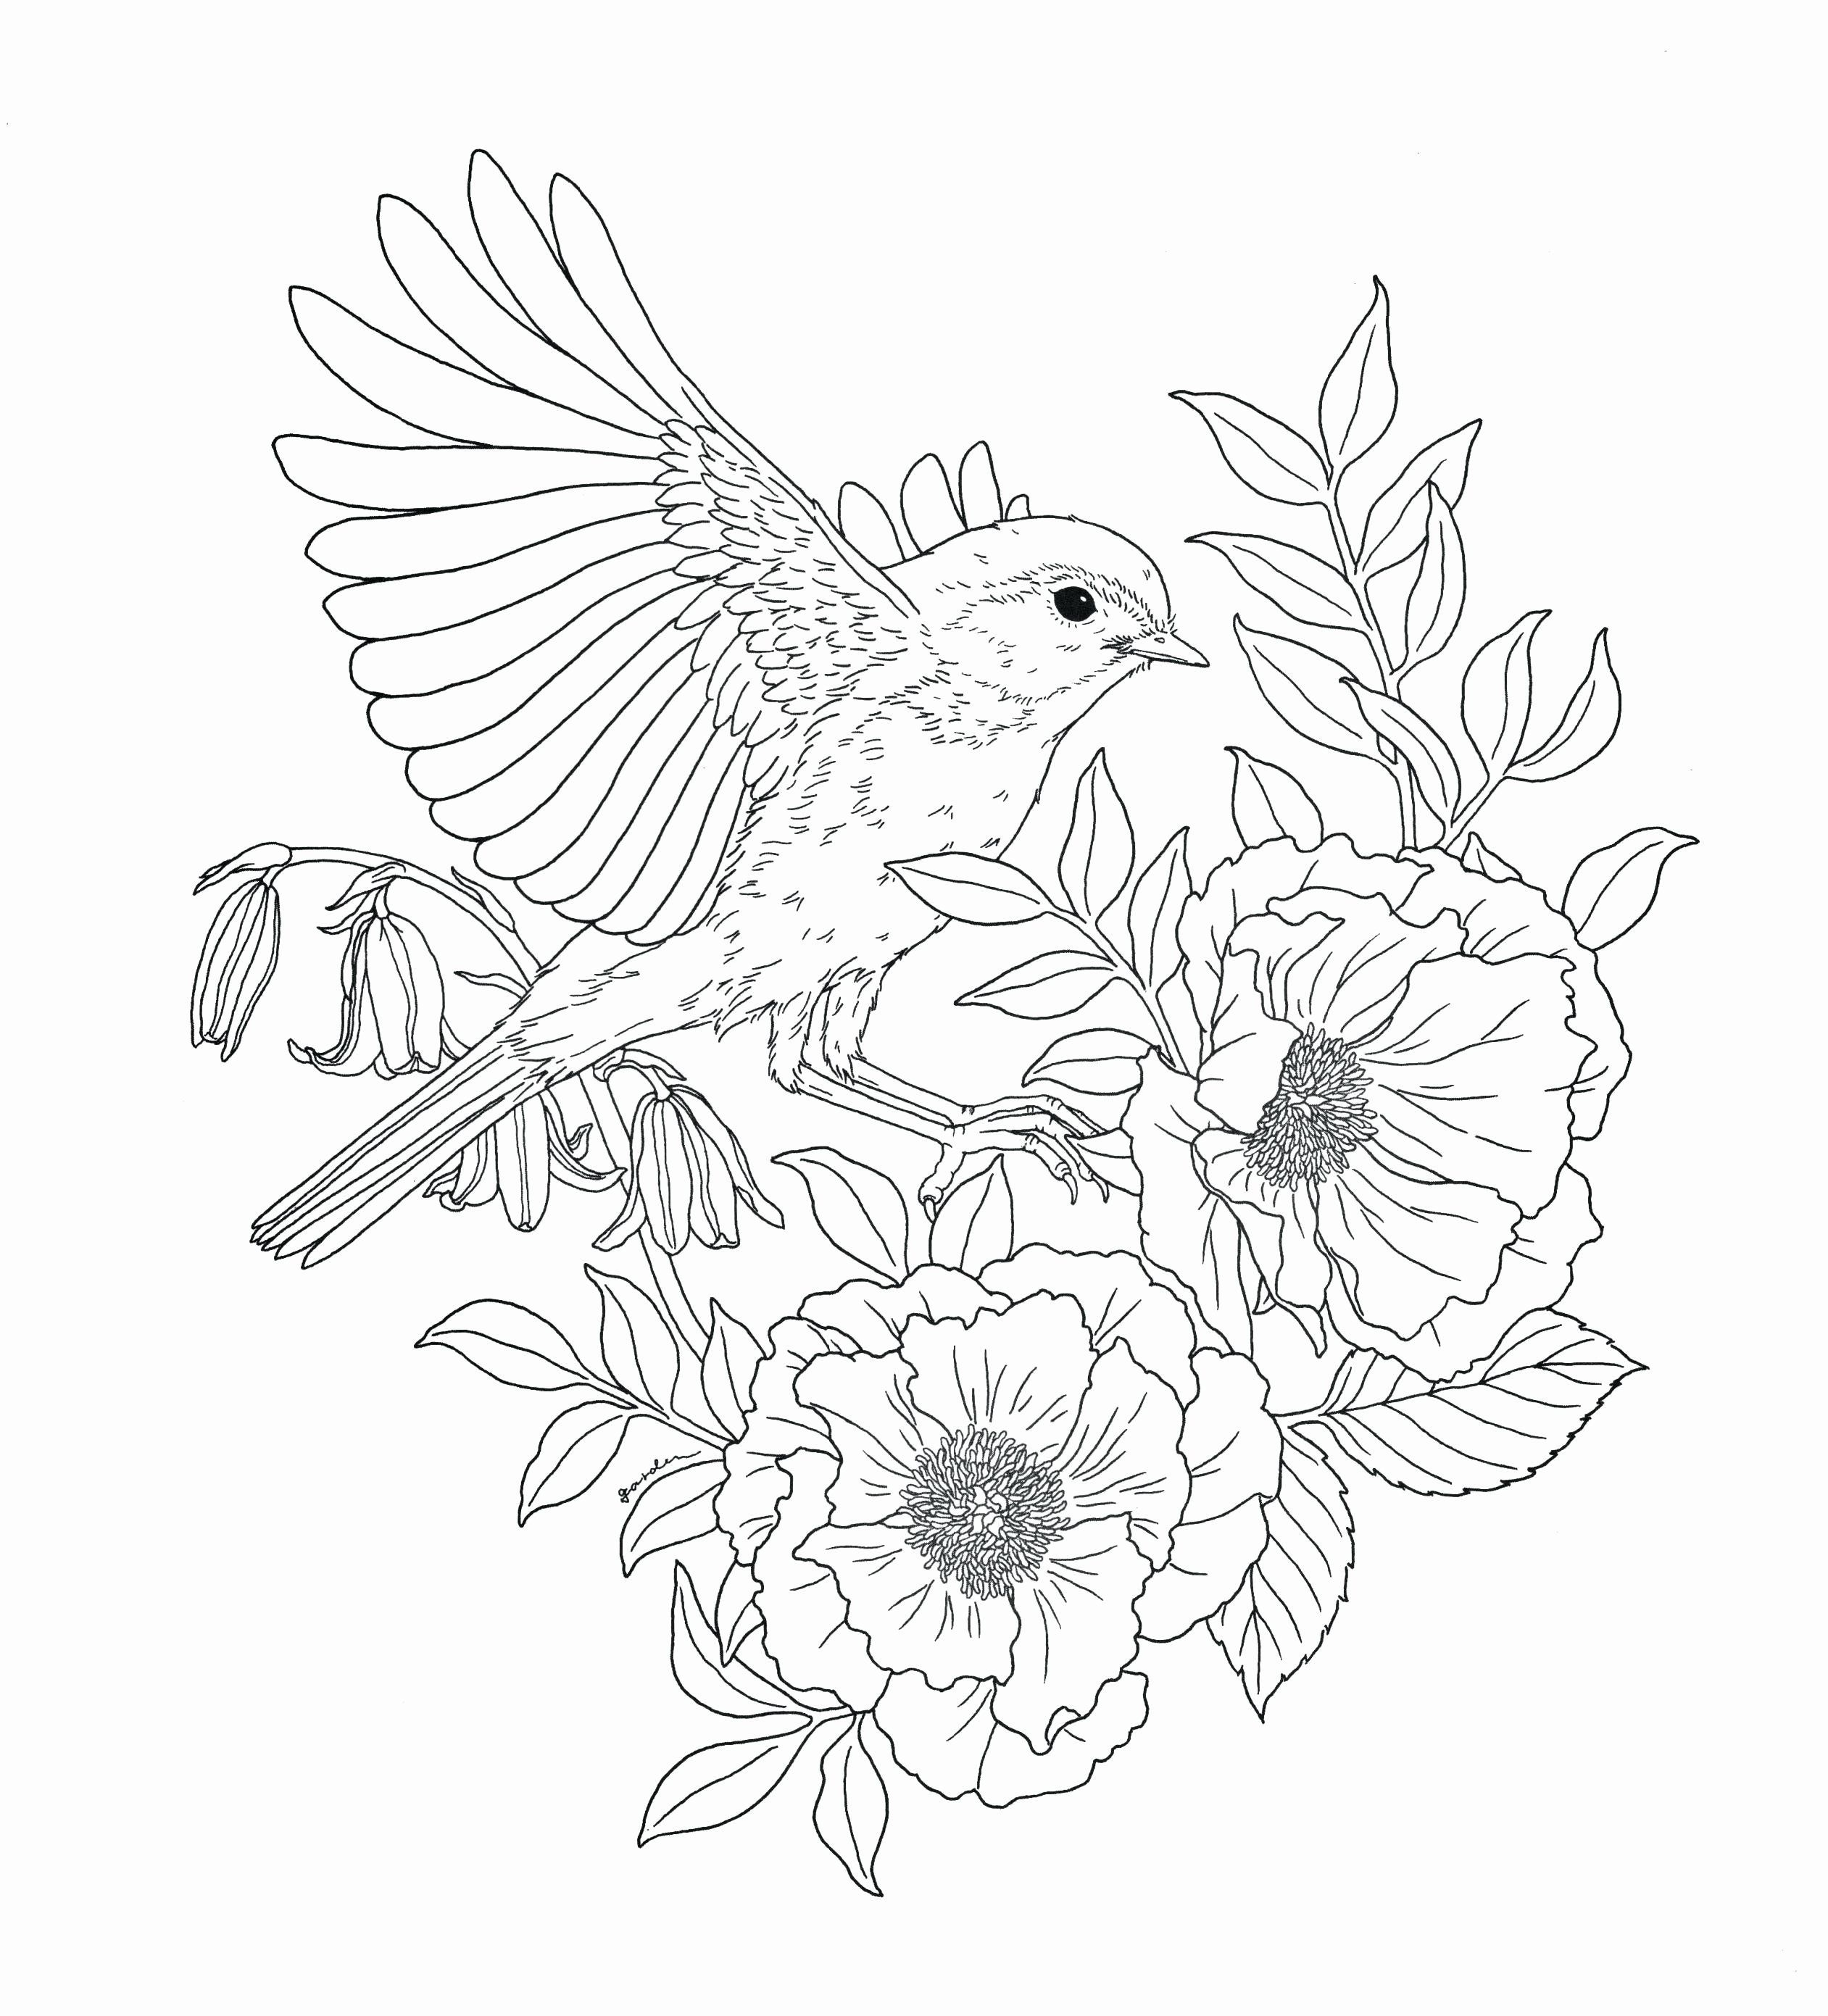 Nature Adult Coloring Pages Elegant Pixie Hollow Coloring